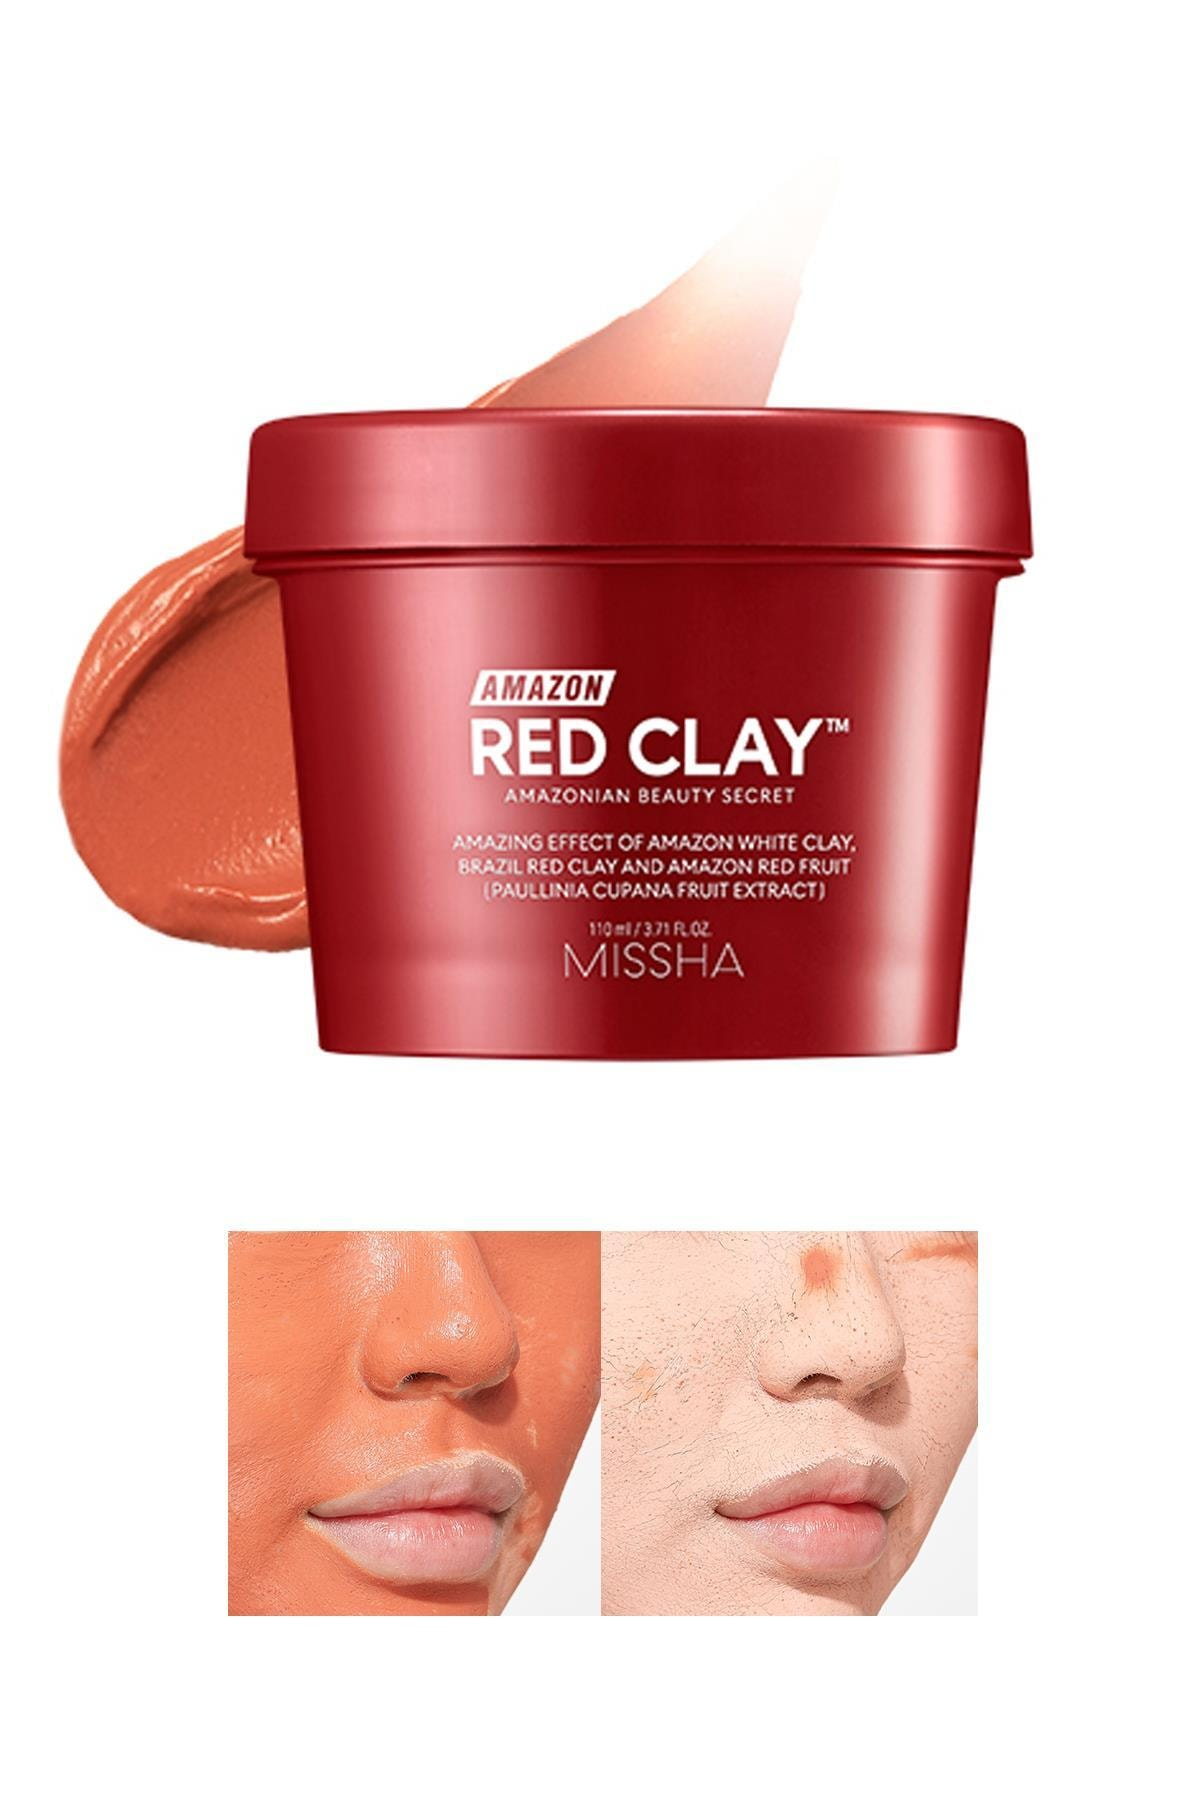 Missha Gözenekli Ciltler İçin Amazon Kili Maskesi 110ML Amazon Red Clay Pore Mask